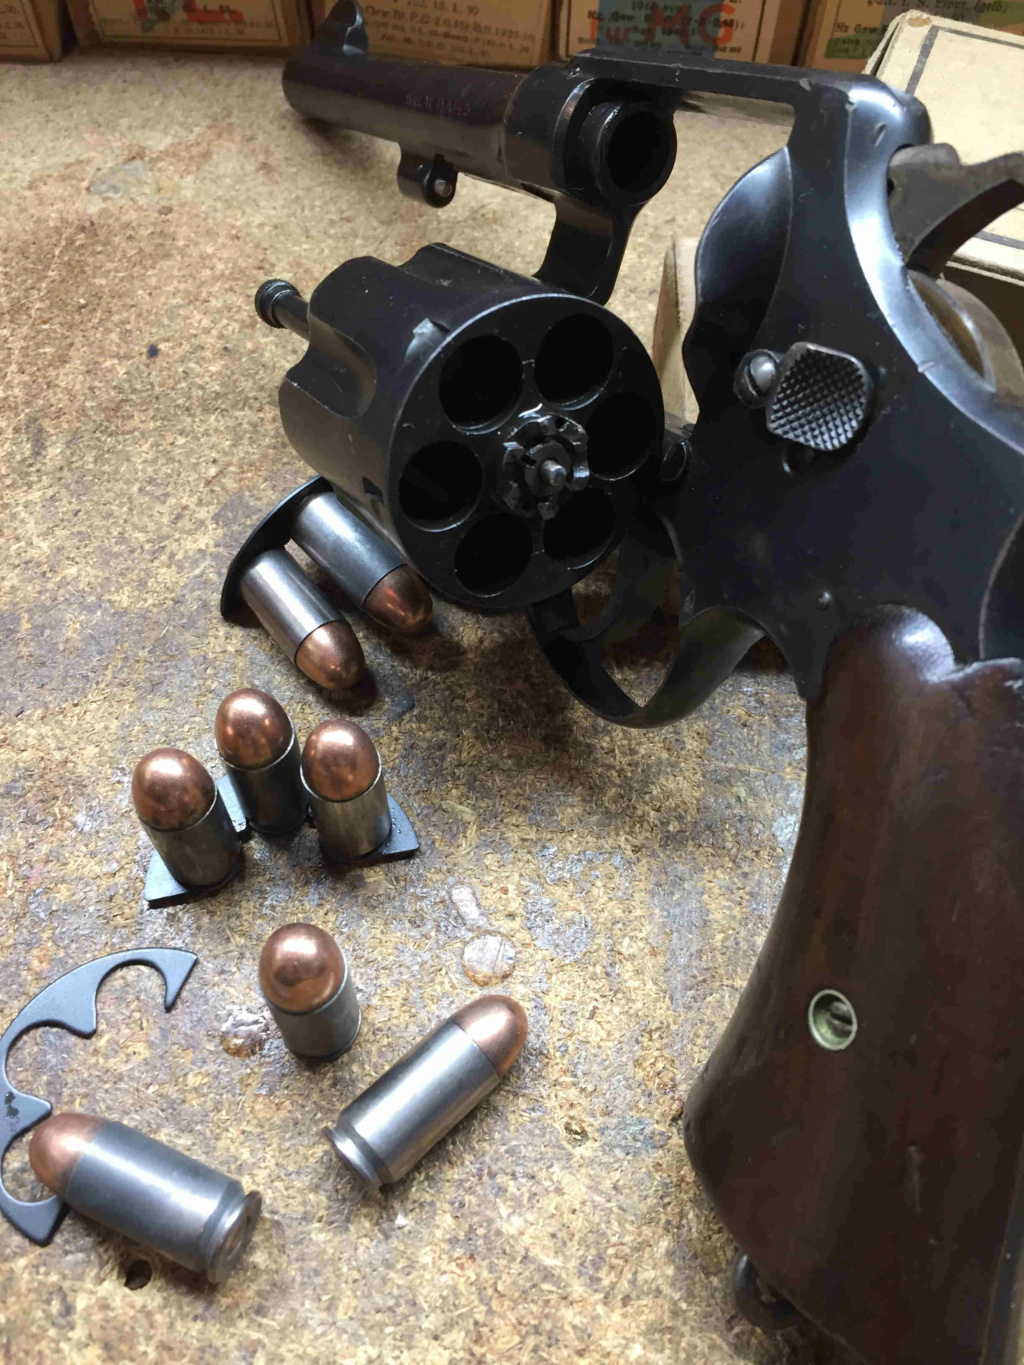 Smith & Wesson 1917 Img_2015